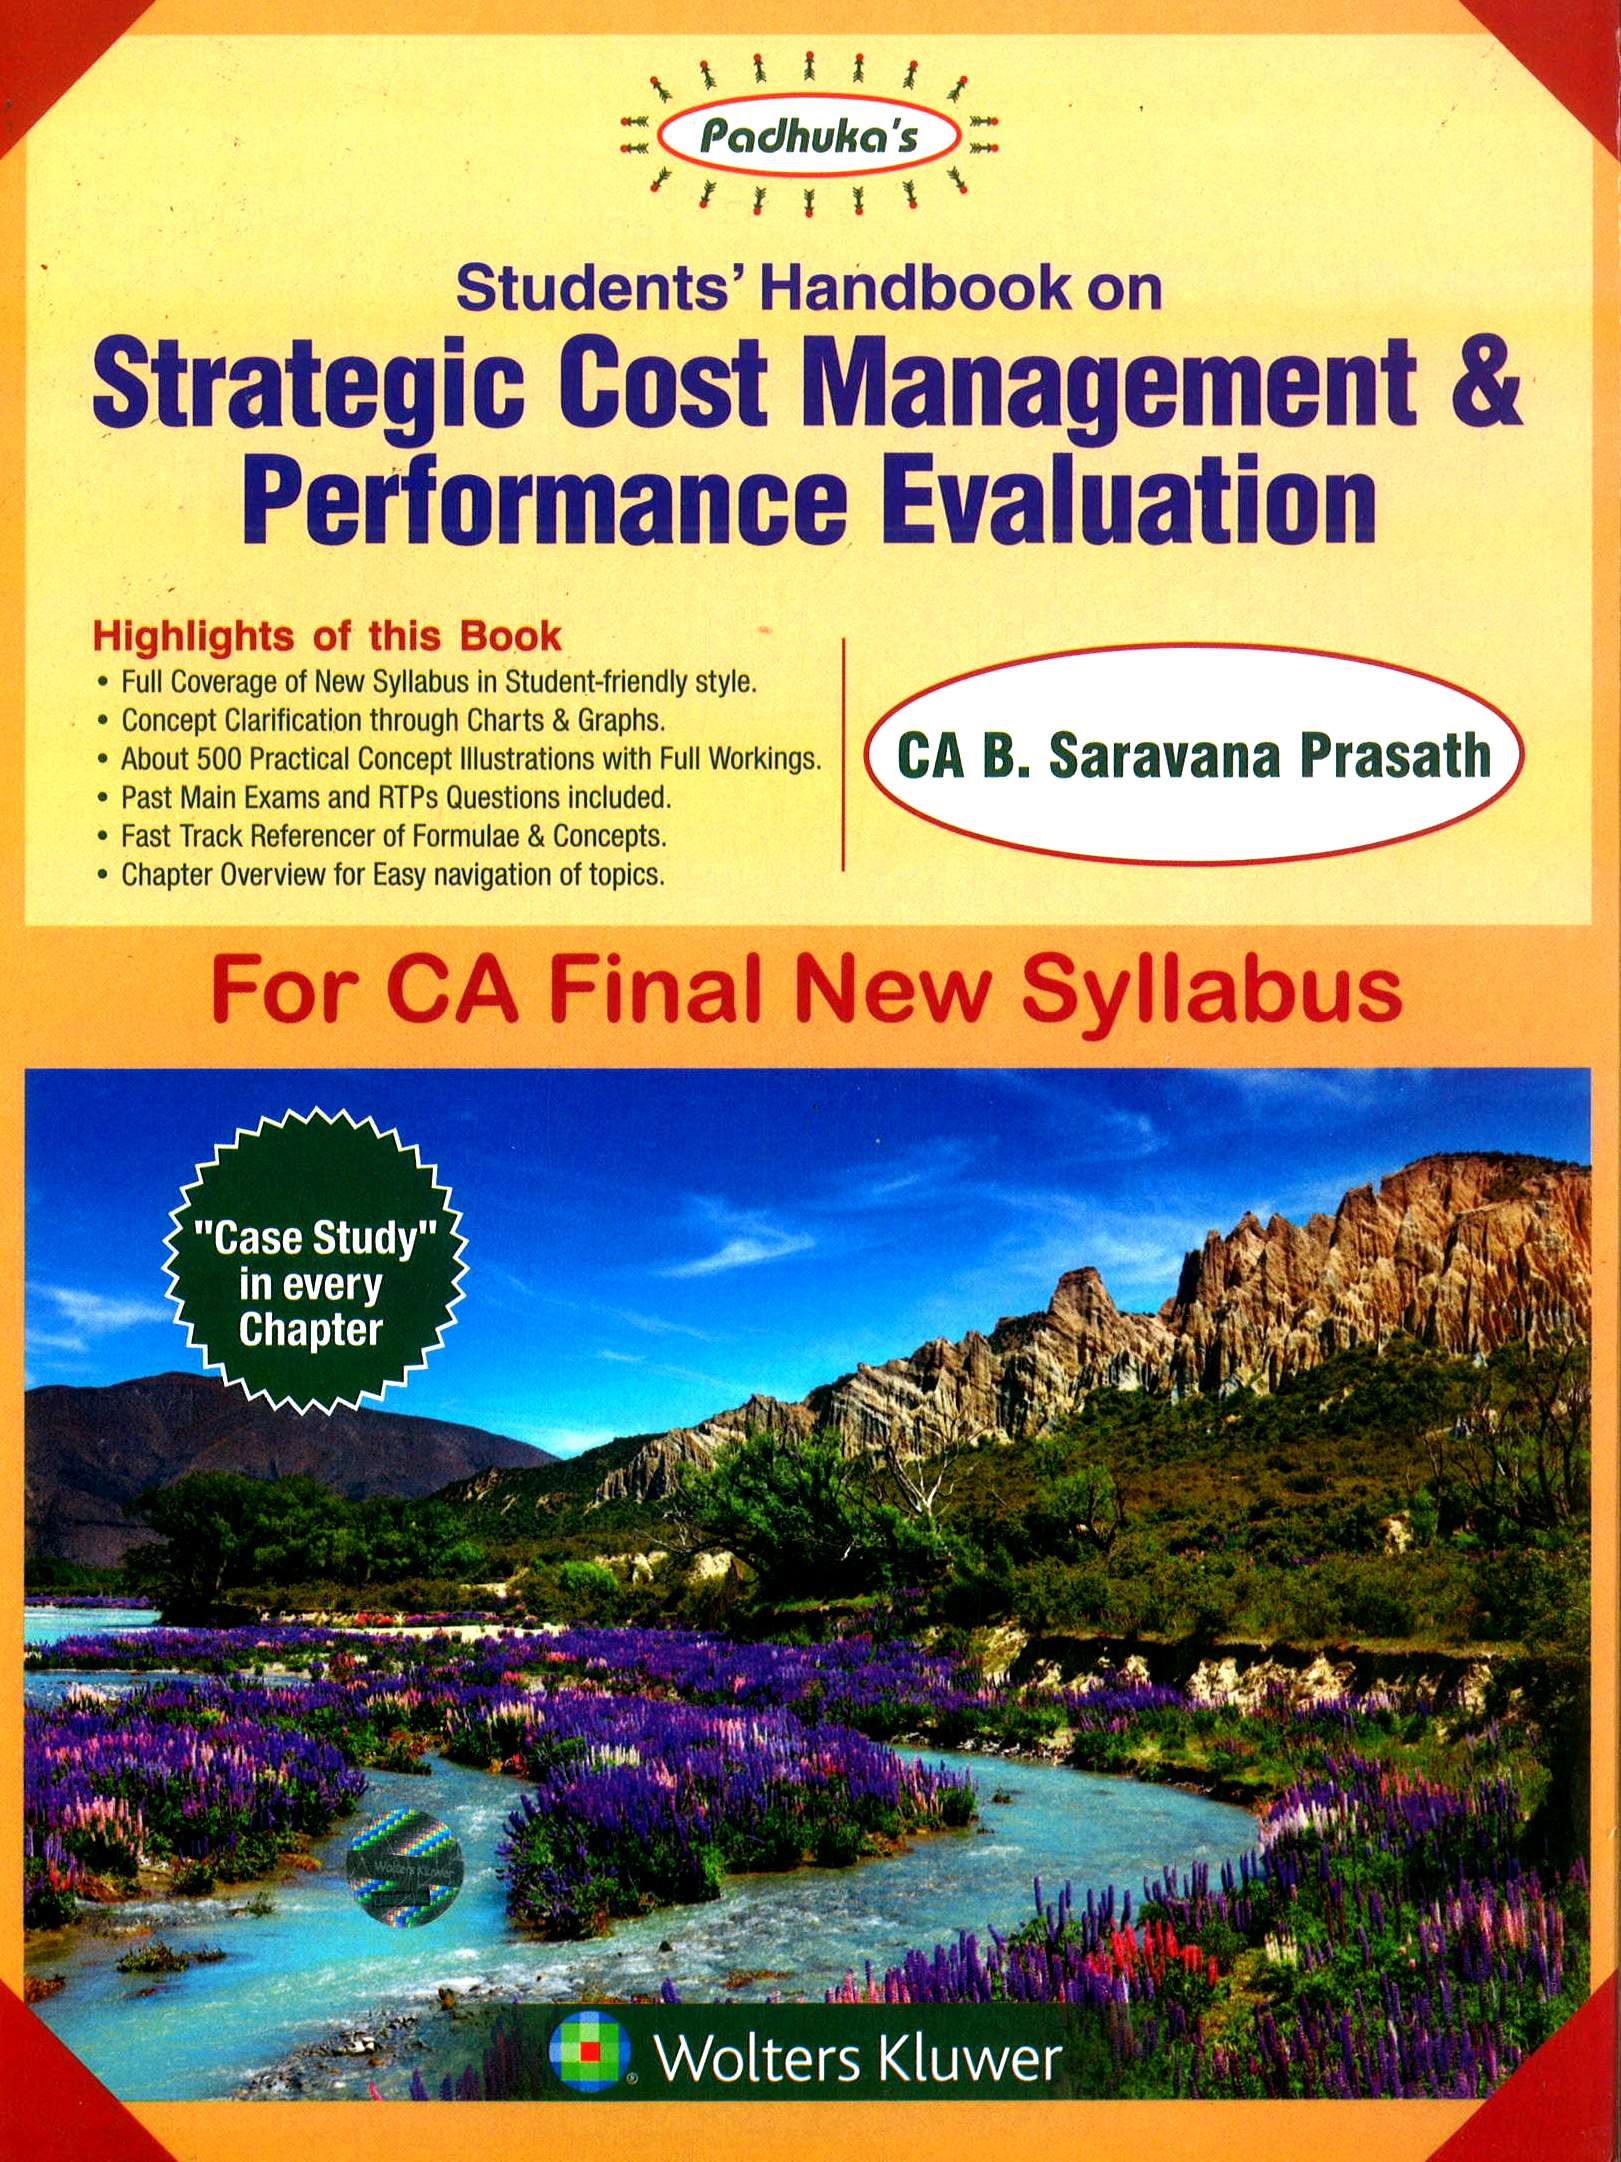 CCH Padhuka Students Handbook on Strategic Cost Management & Performance Evaluation for CA Final New Syllabus By B Saravana Prasath Applicable for November 2018 Exam Edition May 2018